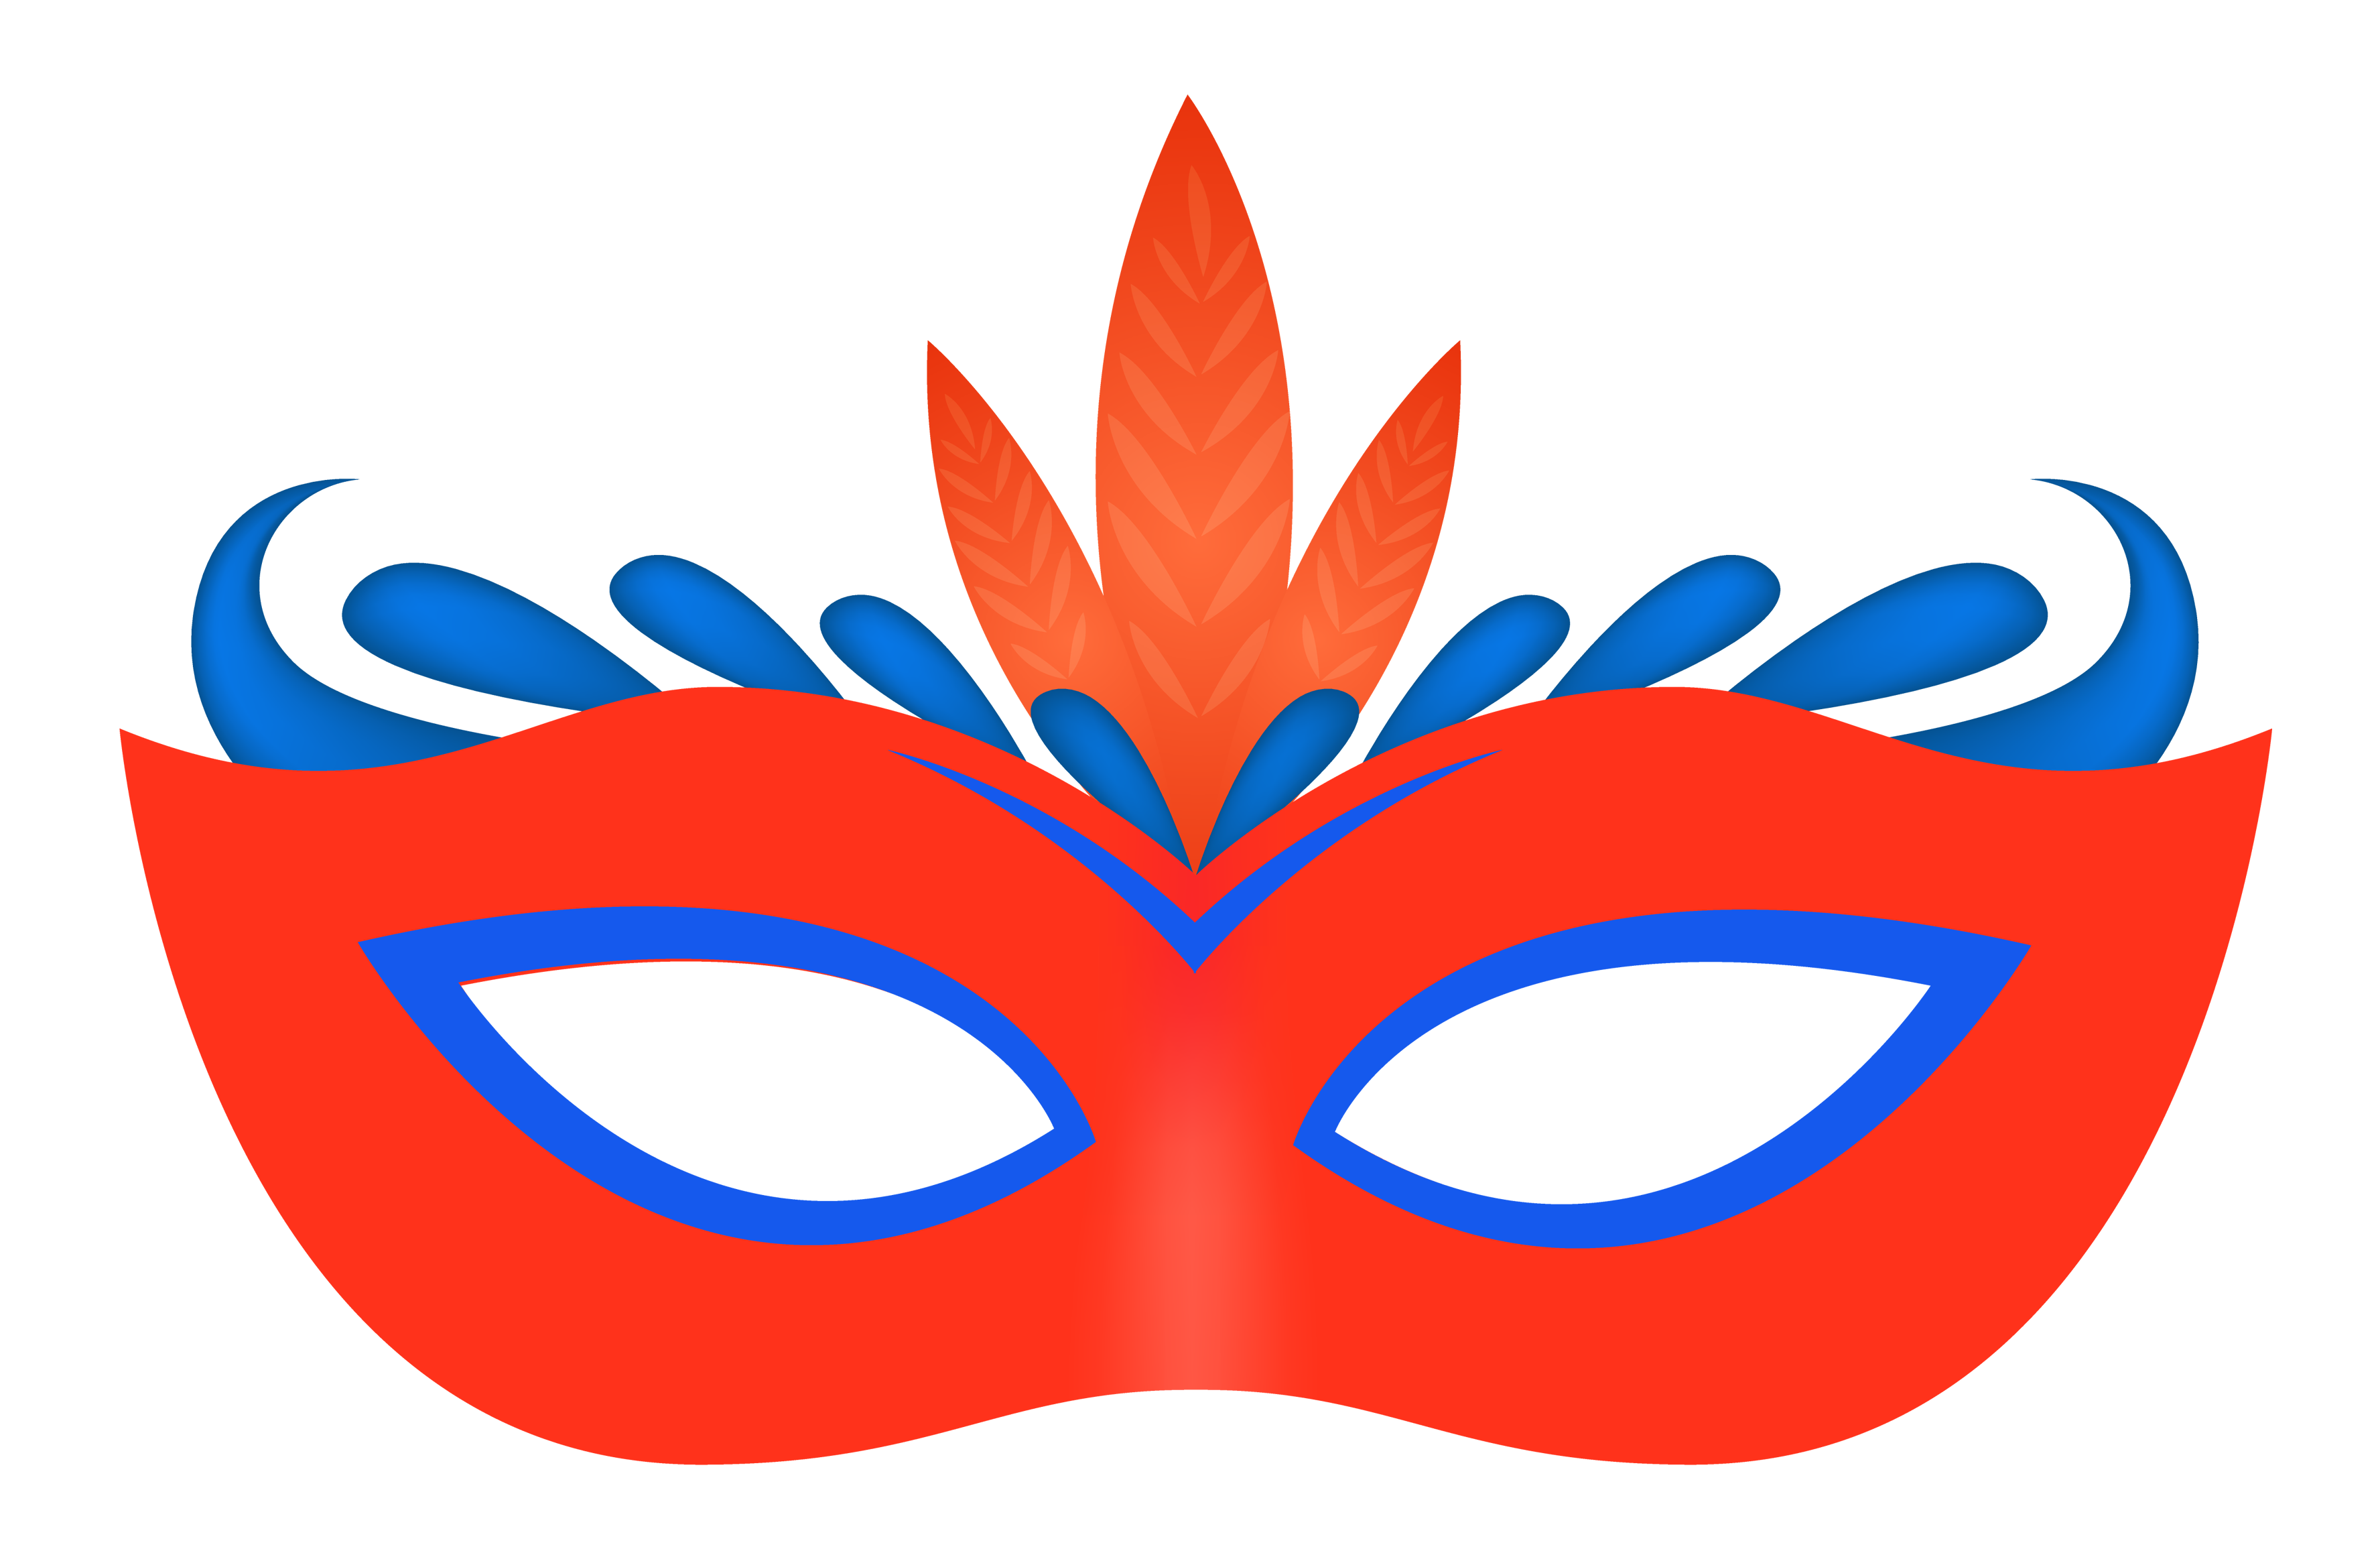 Carnival Eye Mask Png Image